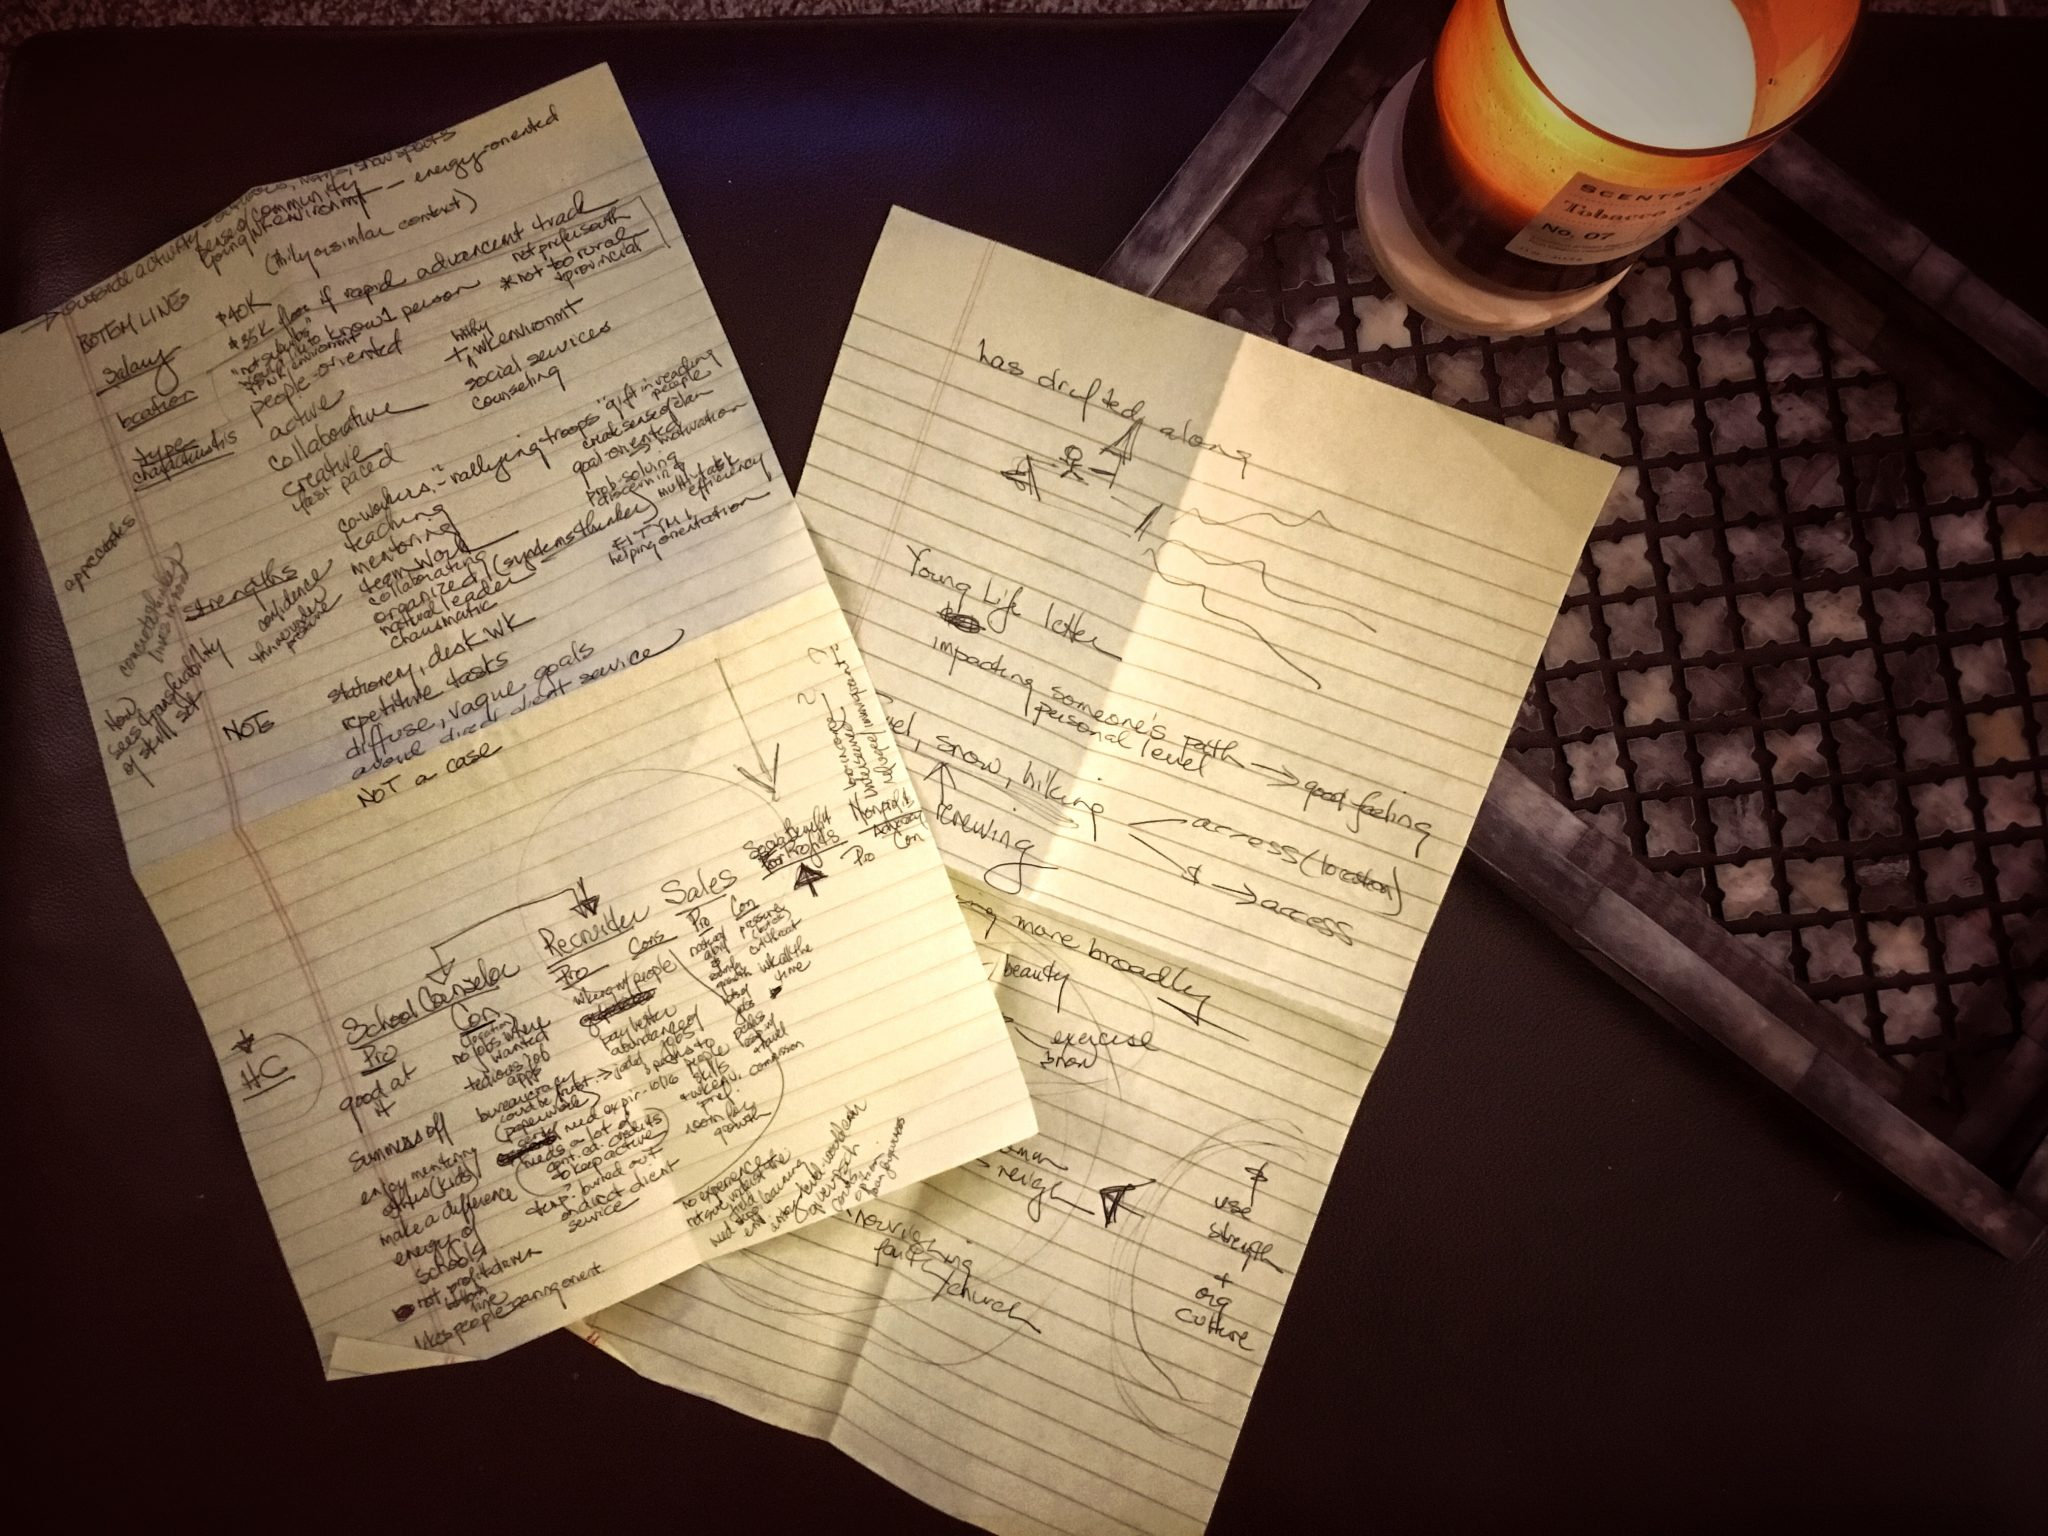 Before changing careers at 30, Carolyn kept these two pieces of yellow legal paper with notes about how Carolyn reevaluated her life and career path.